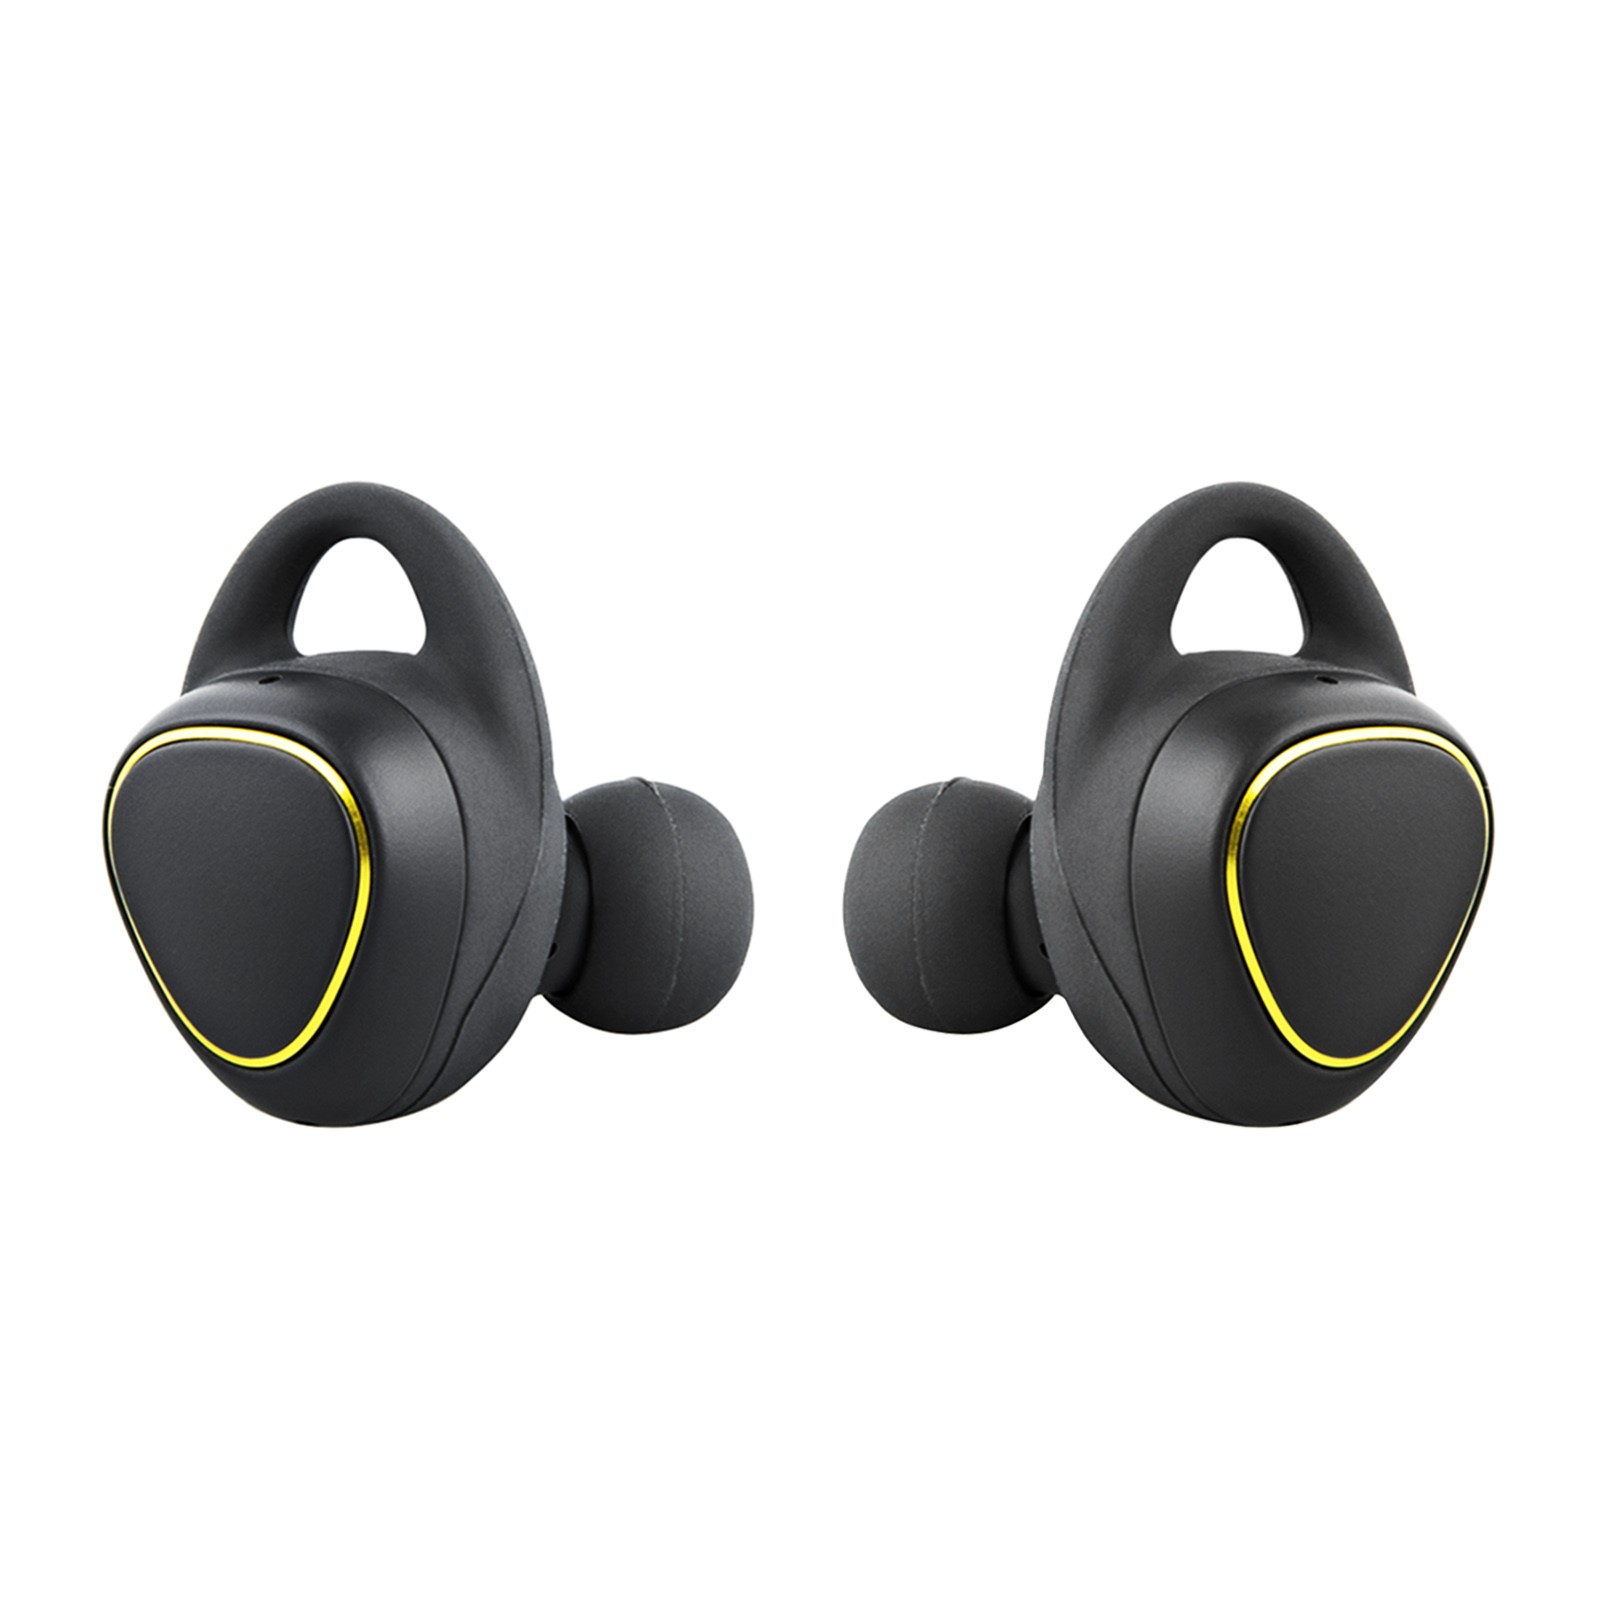 Samsung Gear IconX Cordfree Fitness Earbuds with Activity Tracker (Black) SAM-ICONX-BK-A1